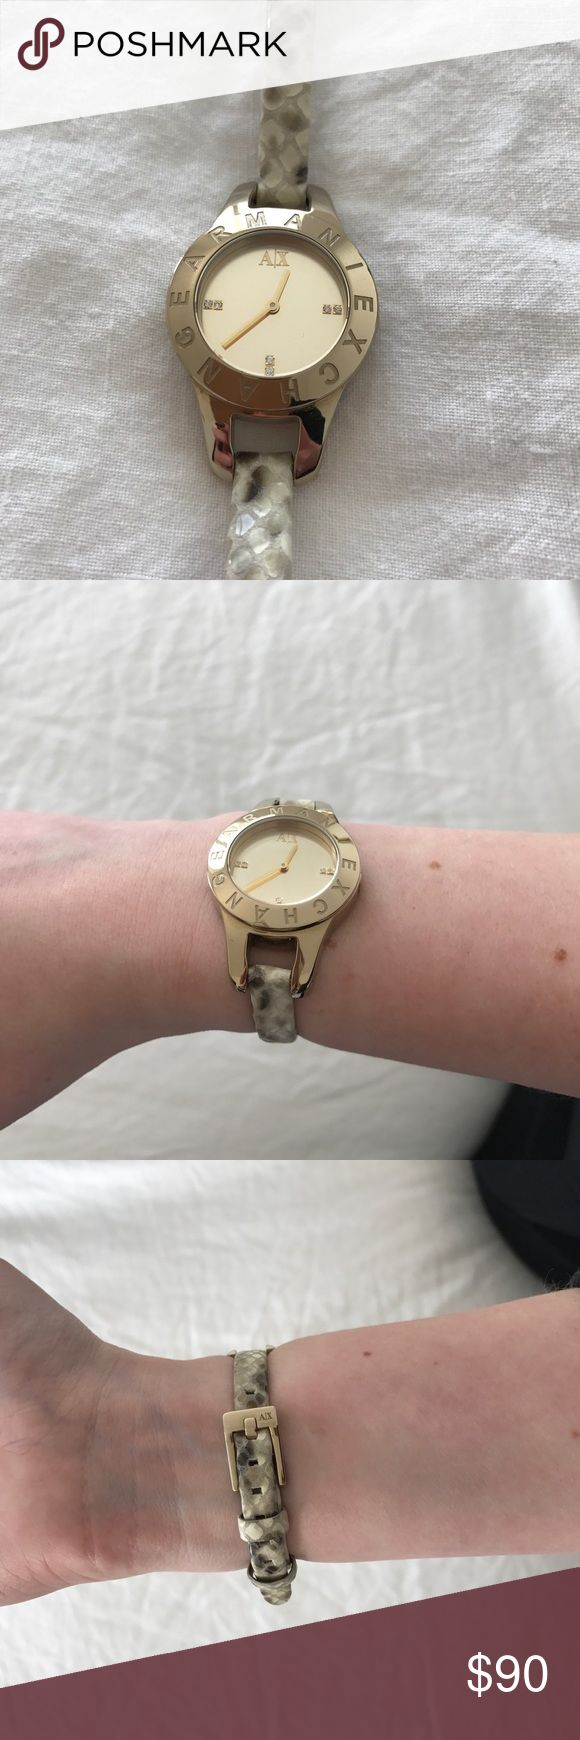 Armani Exchange Snakeskin & Gold Watch Authentic Armani Exchange Gold & Snake Skin watch. Received as a gift and don't wear very much. It is in perfect condition.. I think the battery would just need to be replaced. Let me know if you have any questions!! Thanks! A/X Armani Exchange Accessories Watches